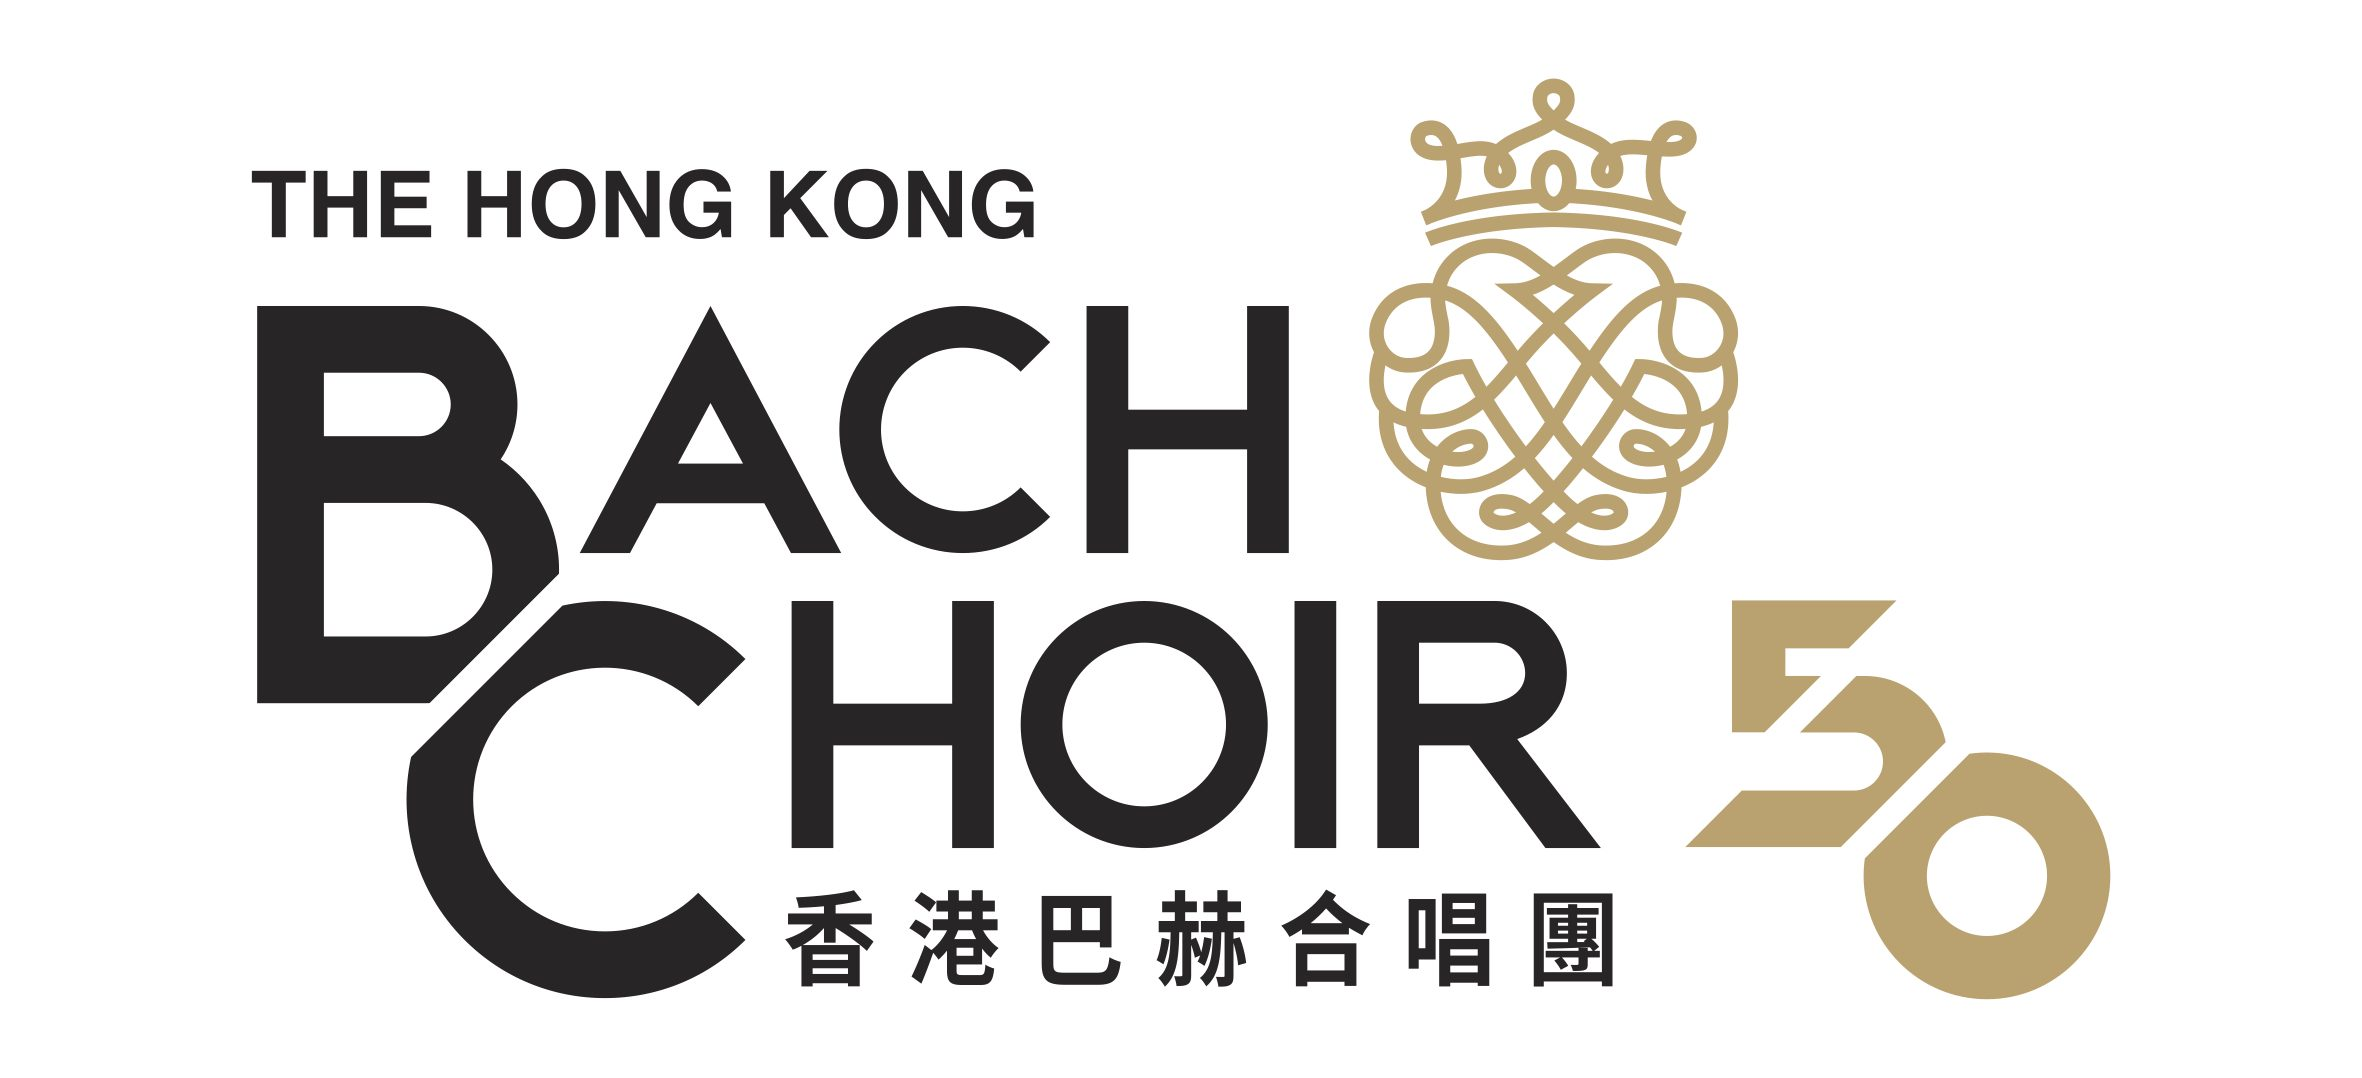 Hong Kong Bach Choir | Hong Kong's leading classical chorus